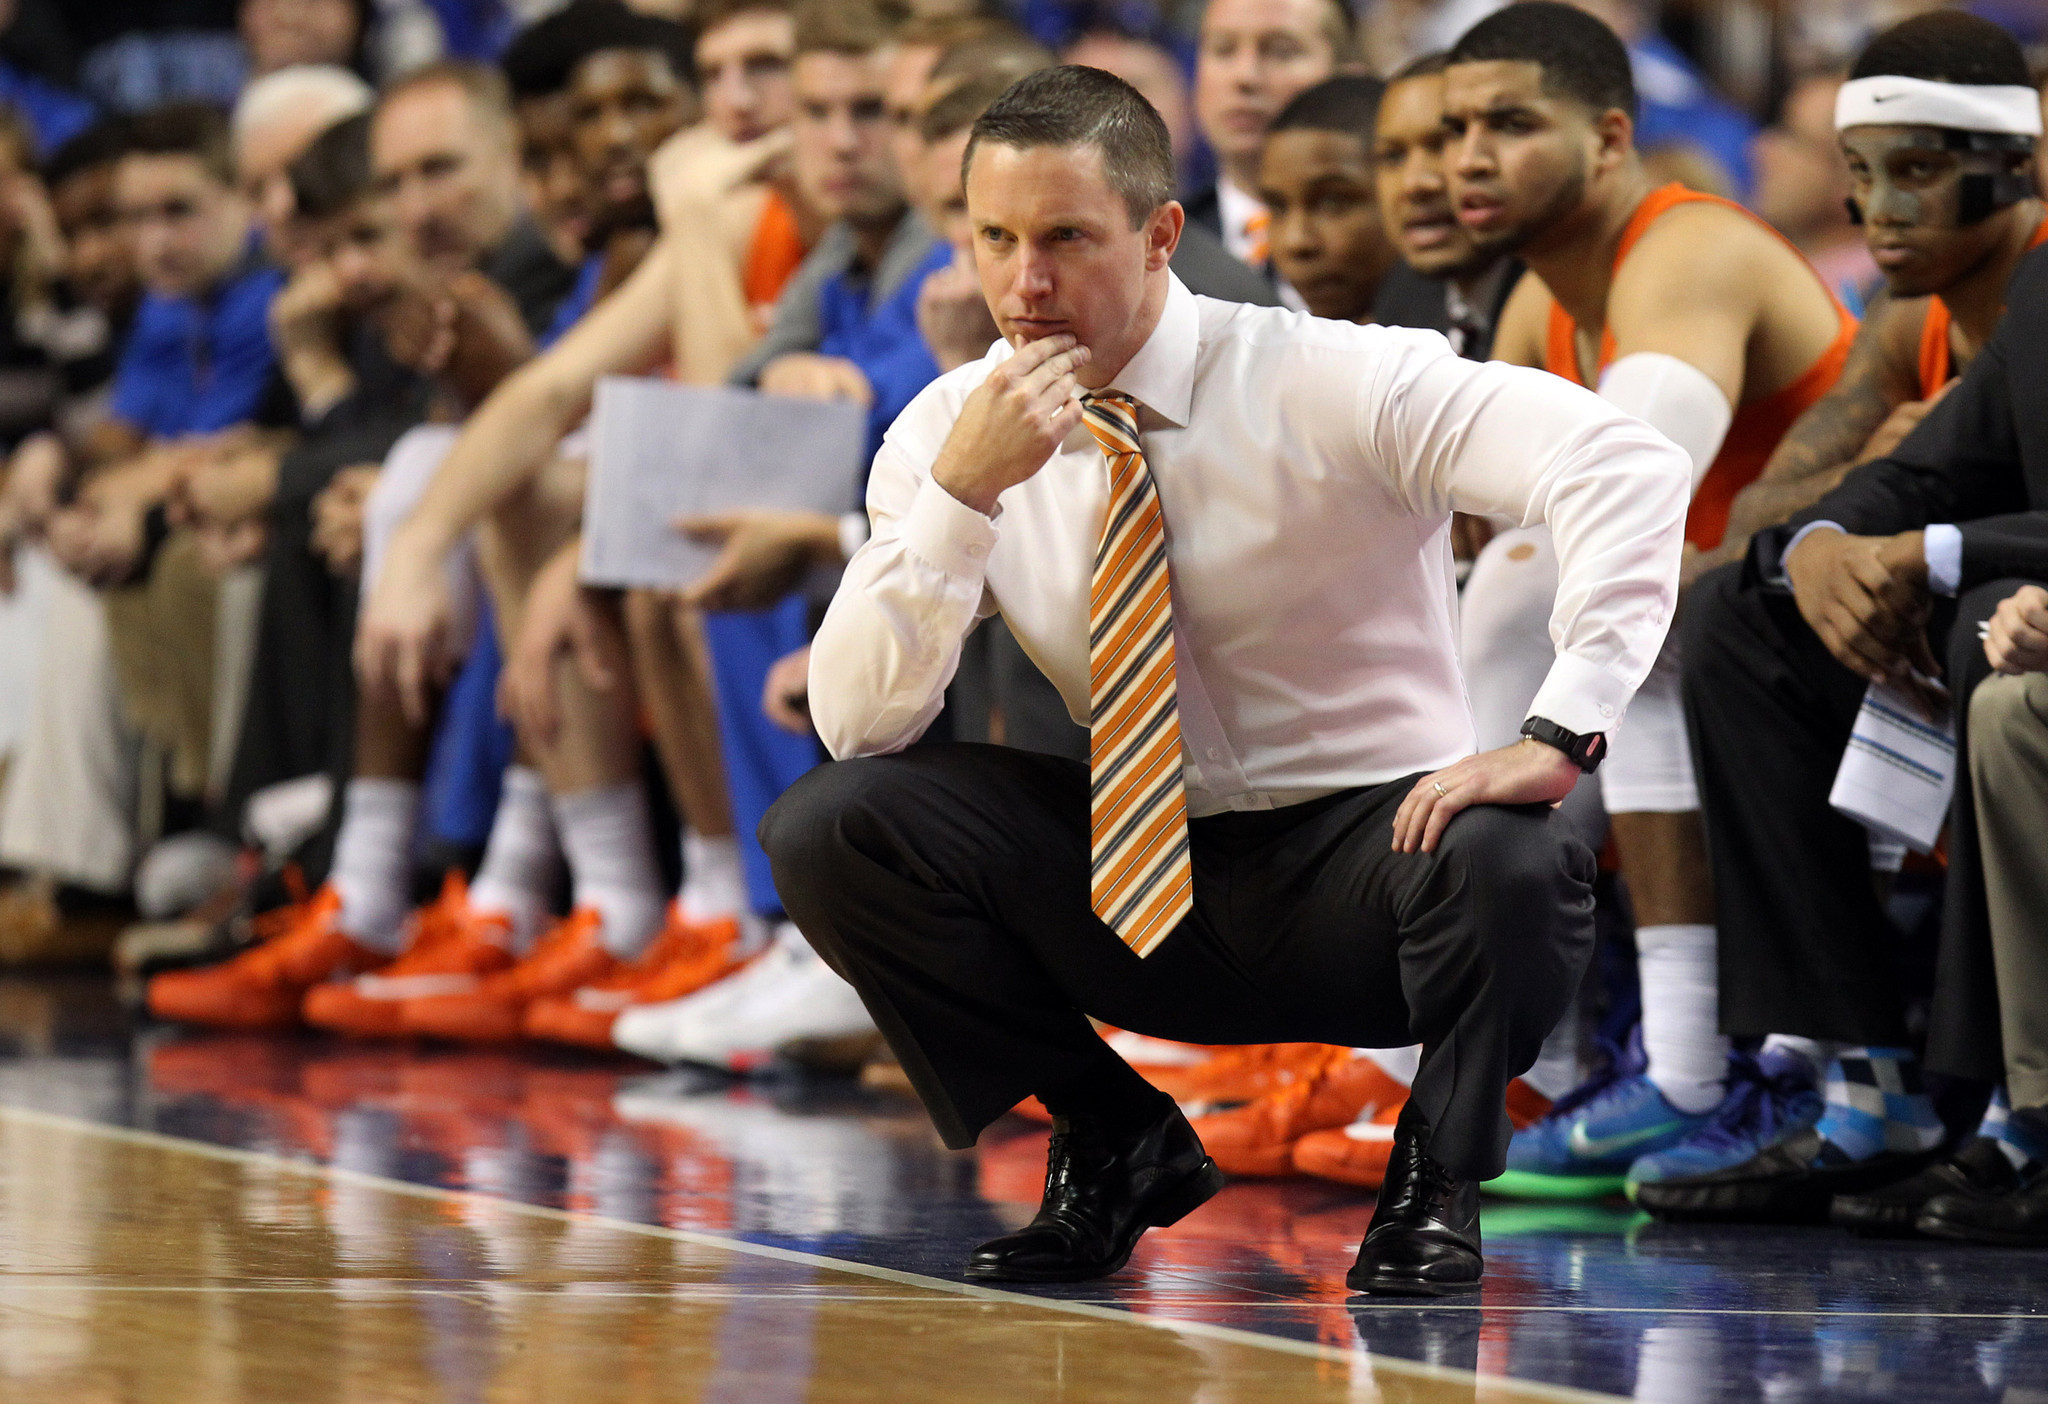 Os-gators--non-conference-schedule-men-s-basketball-20160808